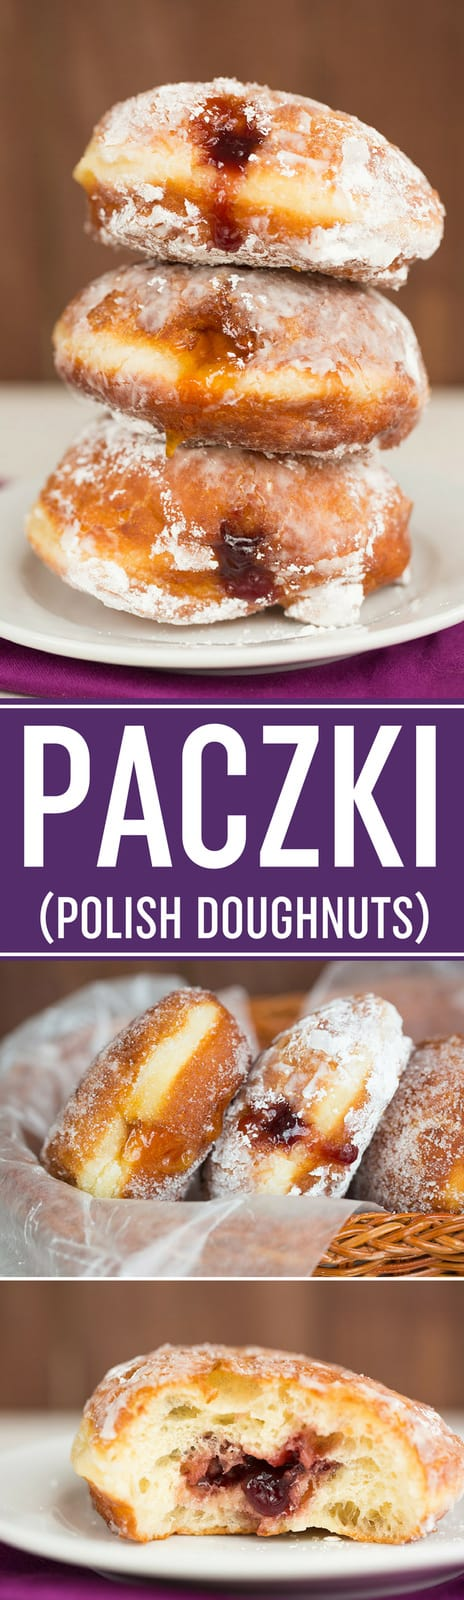 Paczki Recipe :: These Polish doughnuts are easy and so delicious! Fill with your favorite fruit and roll in sugar, then serve for Paczki Day. #doughnuts #donuts #polish #mardigras #paczki